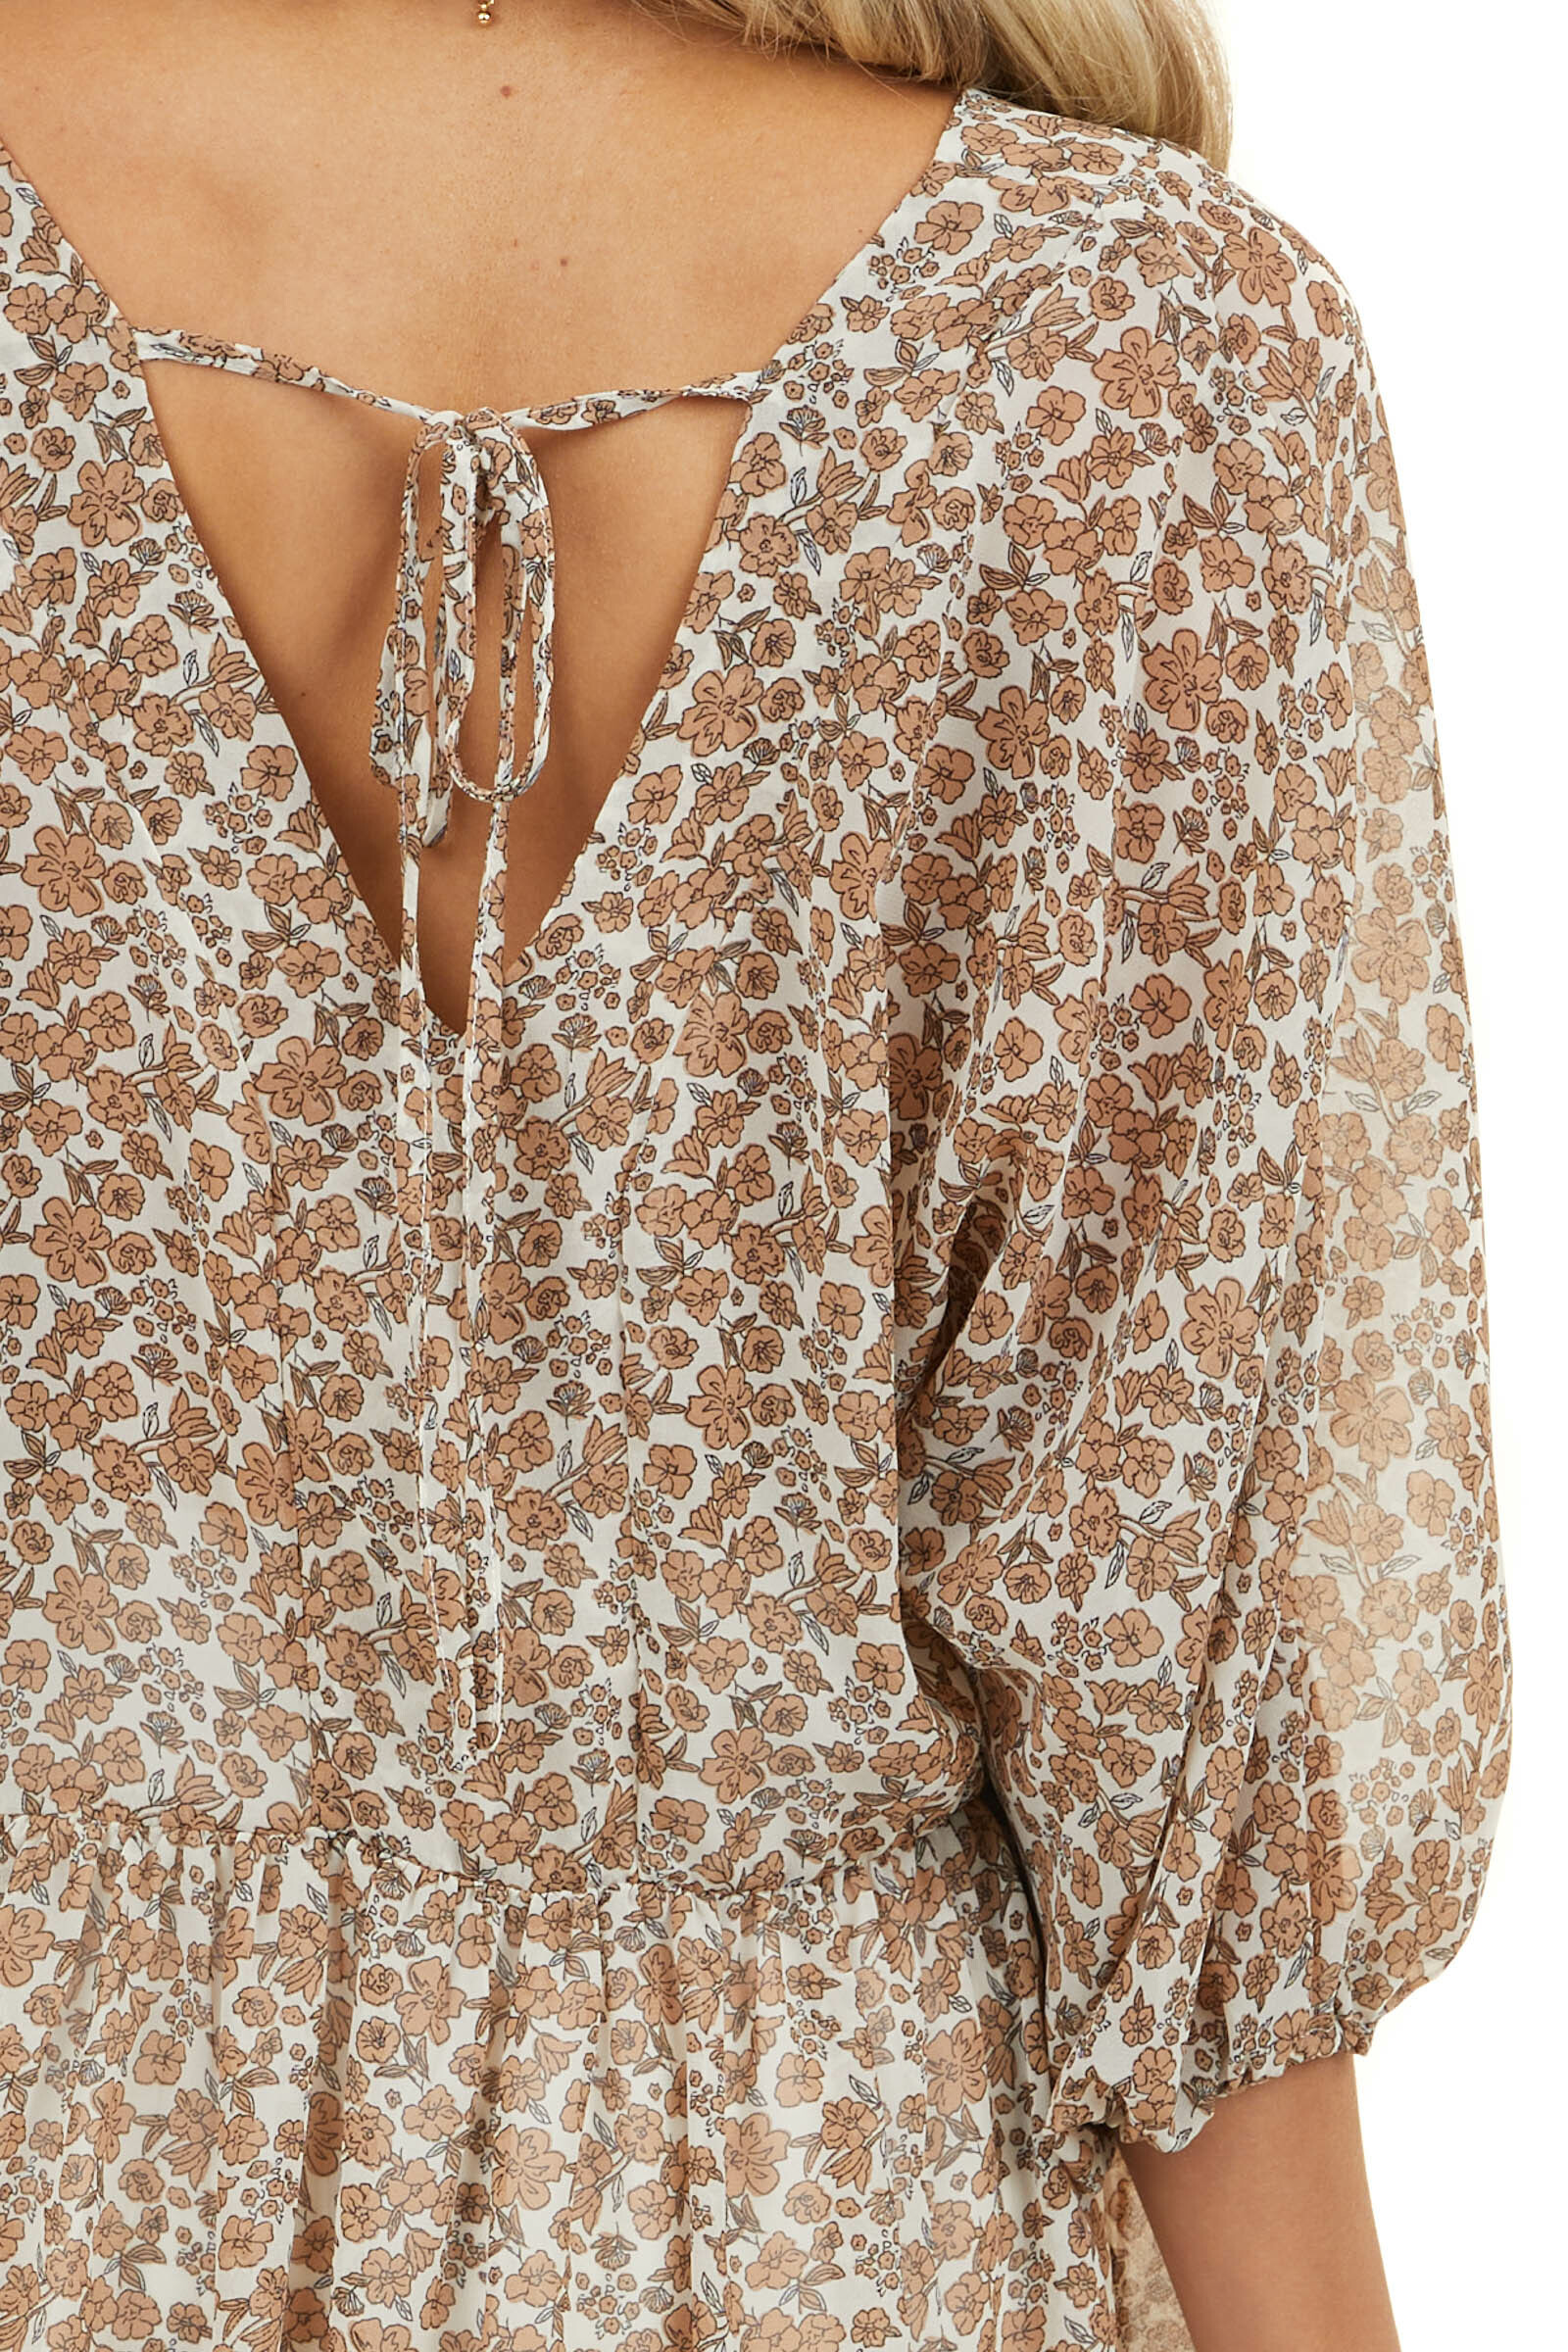 Ivory and Toffee Floral Print Babydoll Sheer Top with Tie